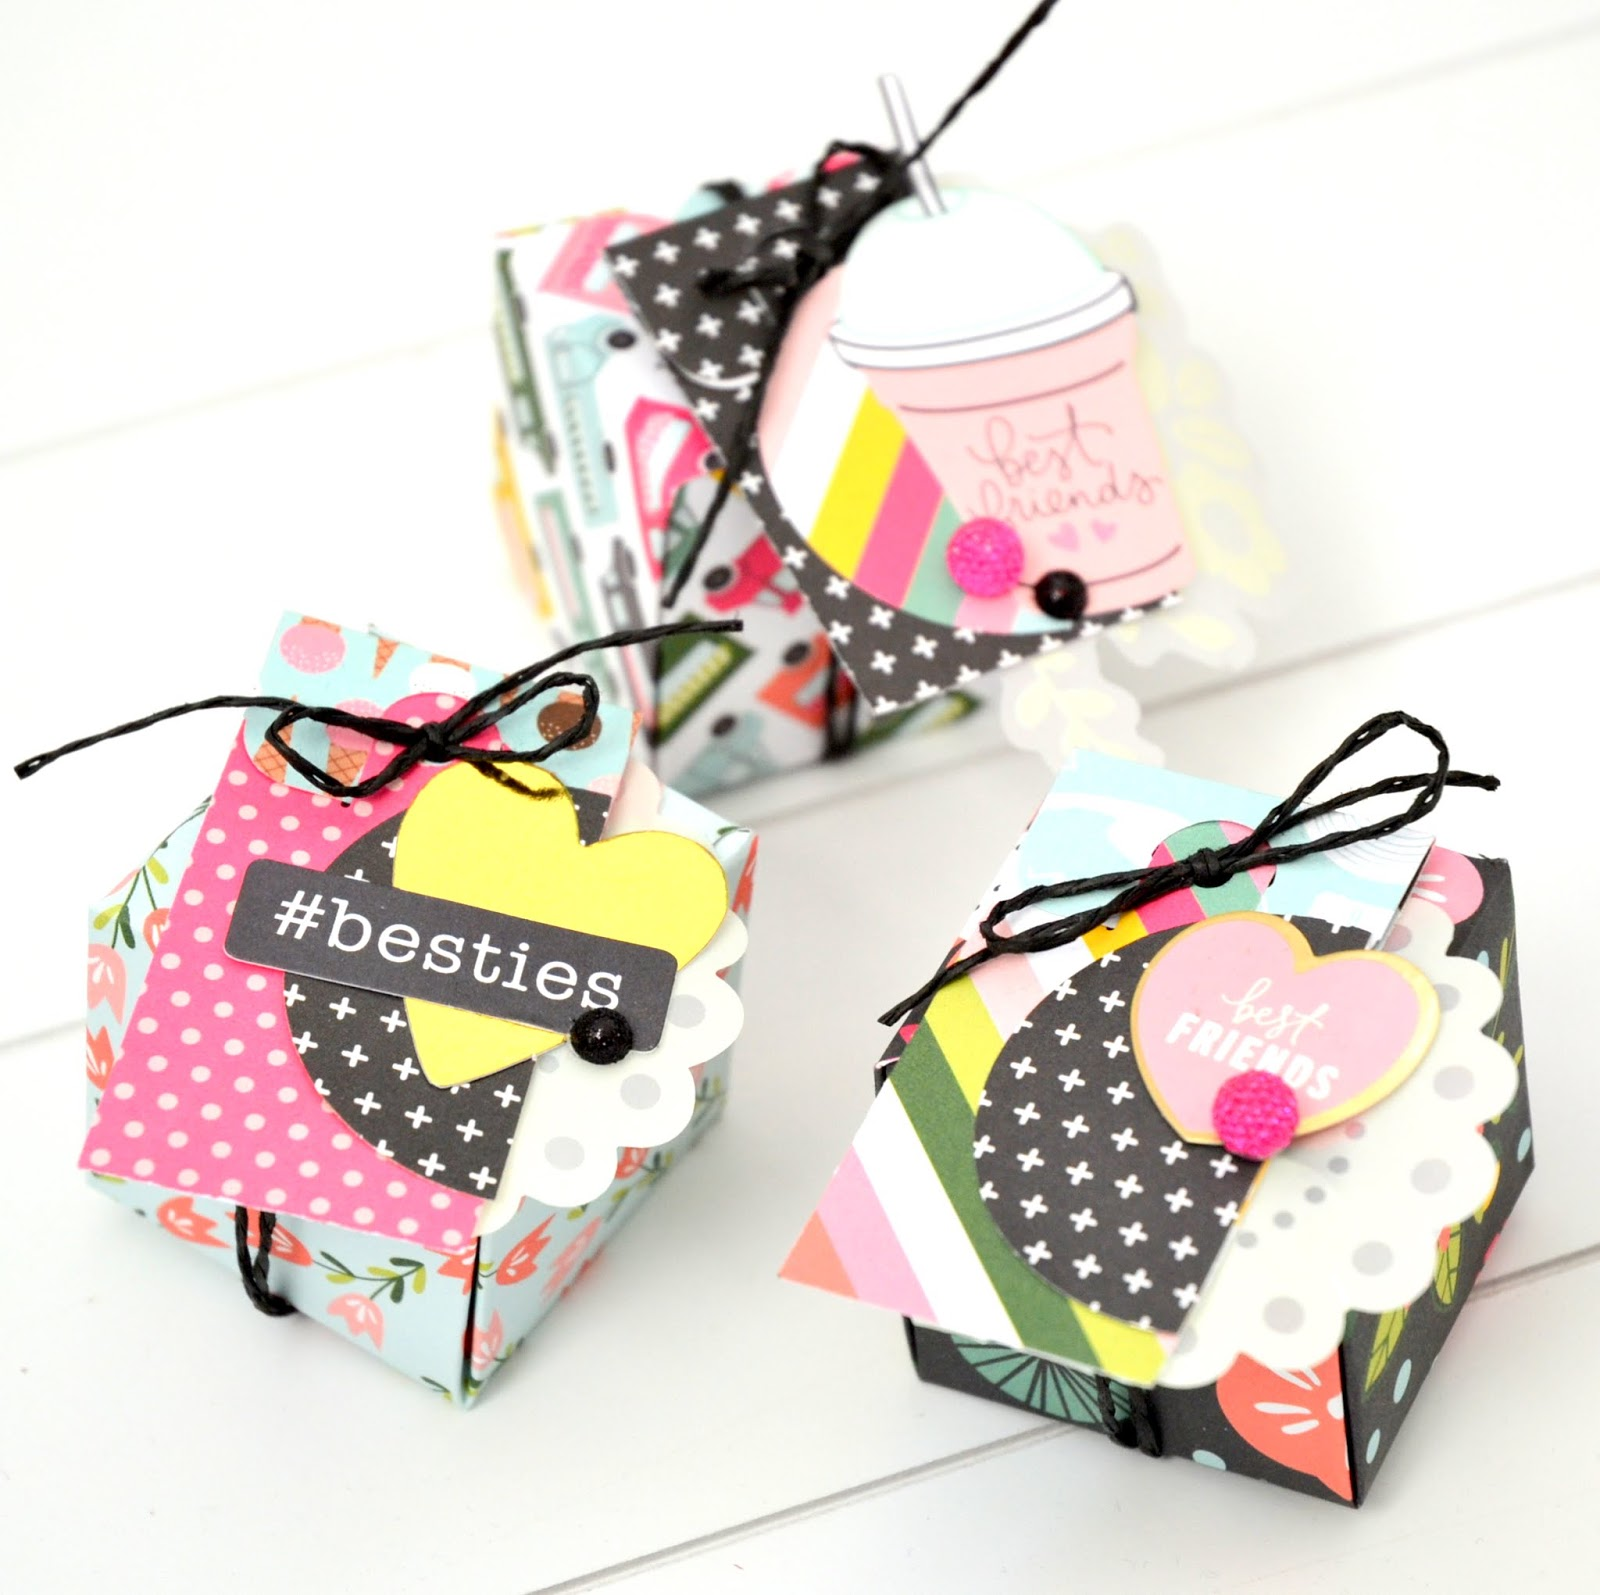 Valentines Day Inspiration Week #2 [Gift Boxes] - the scrappy mermaid